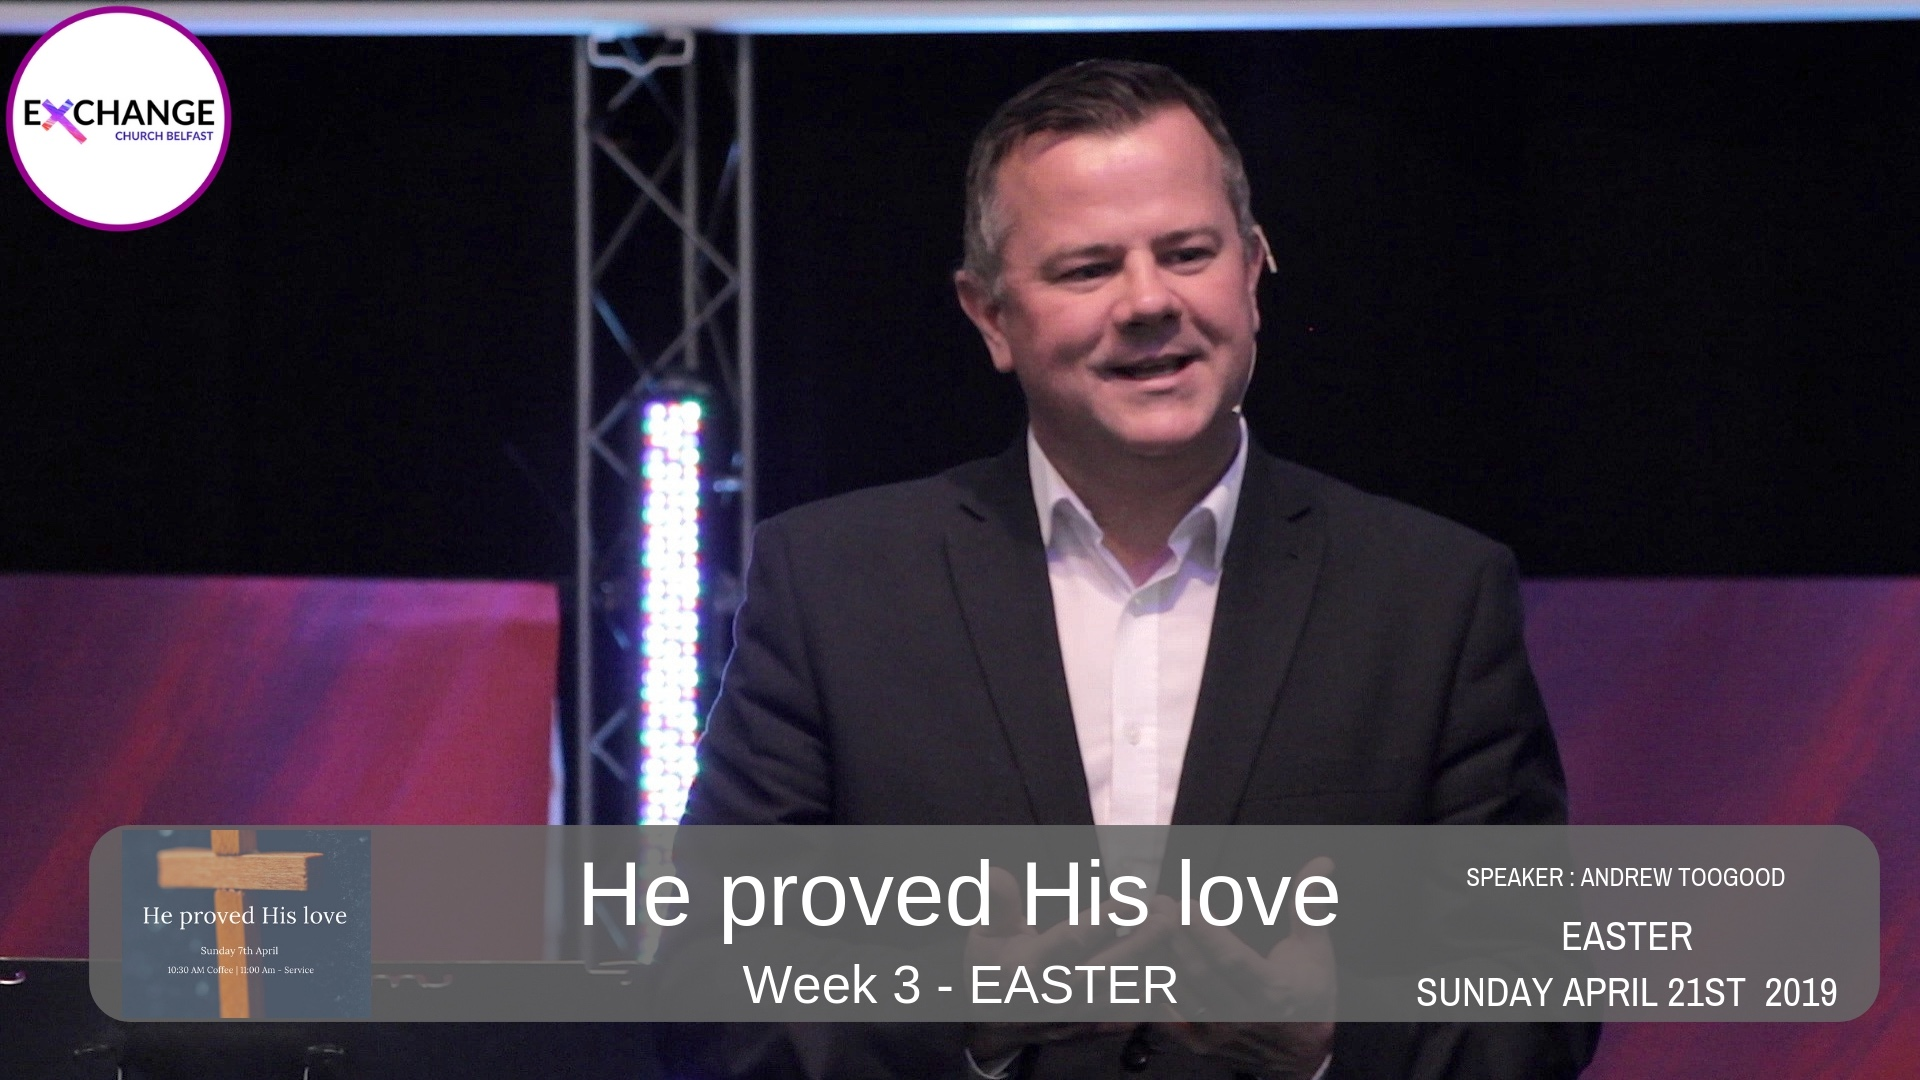 He proved His love - Week 3 - No more shame. You are good enough